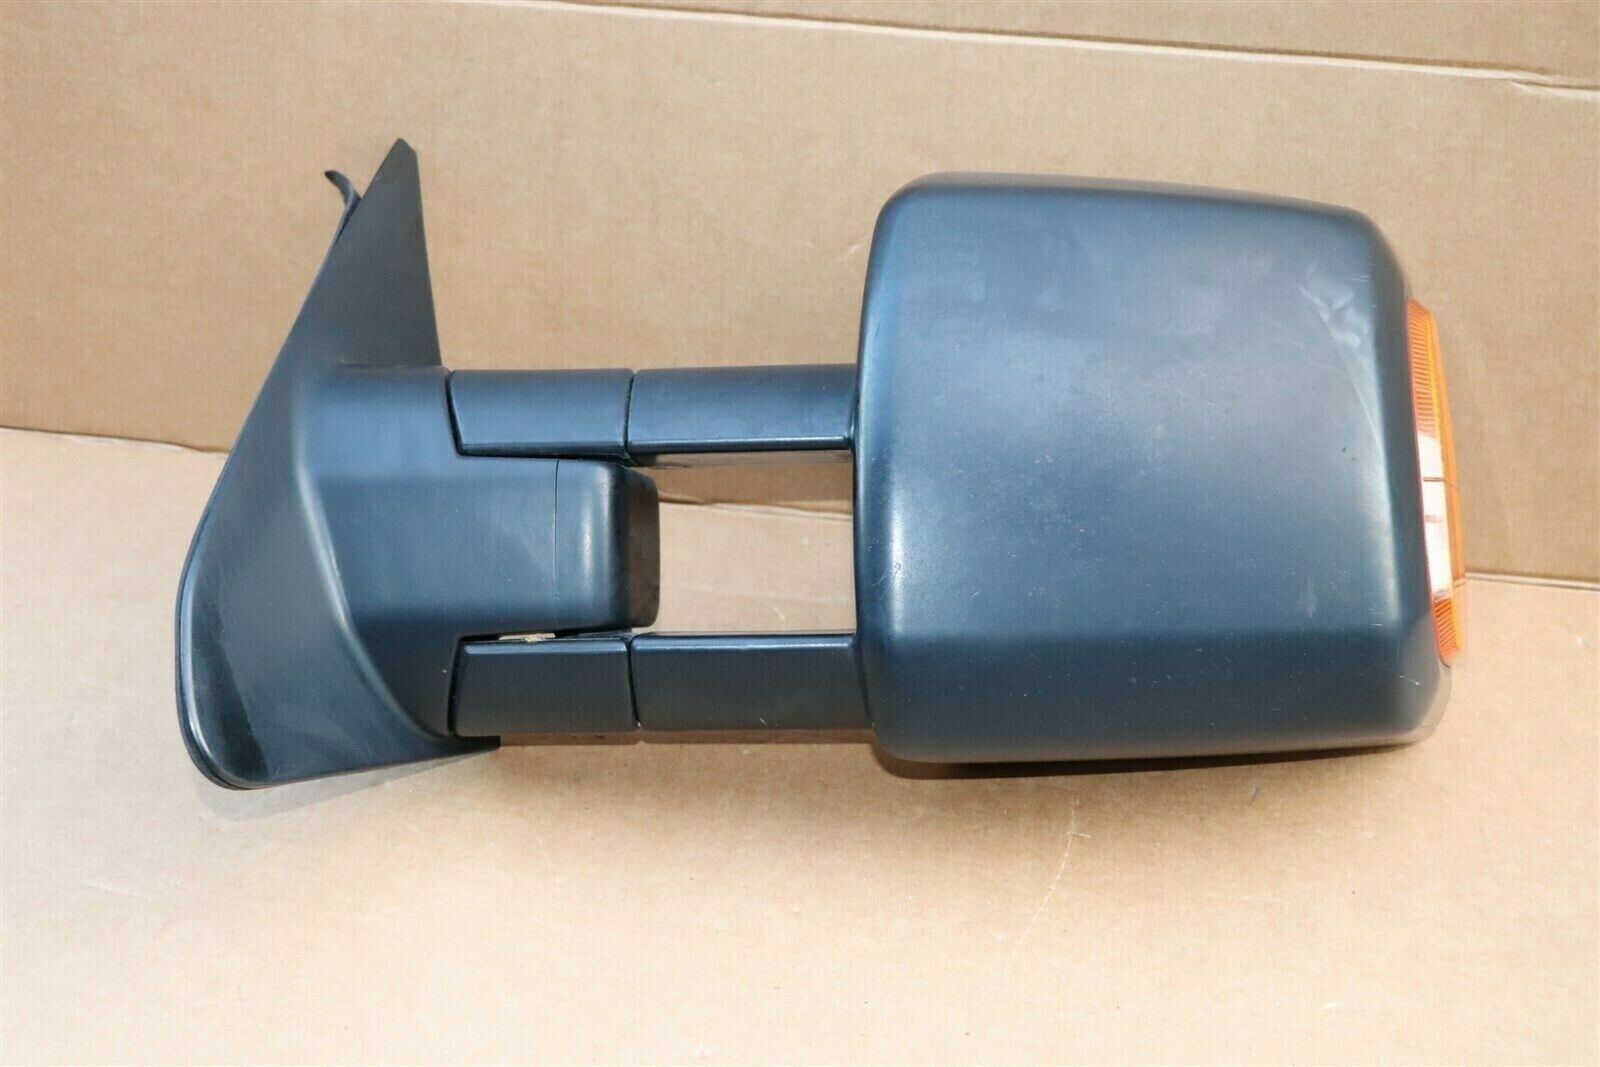 07-13 Toyota Tundra Heated Power Door Tow Towing Mirror W/ Signal Driver Left LH